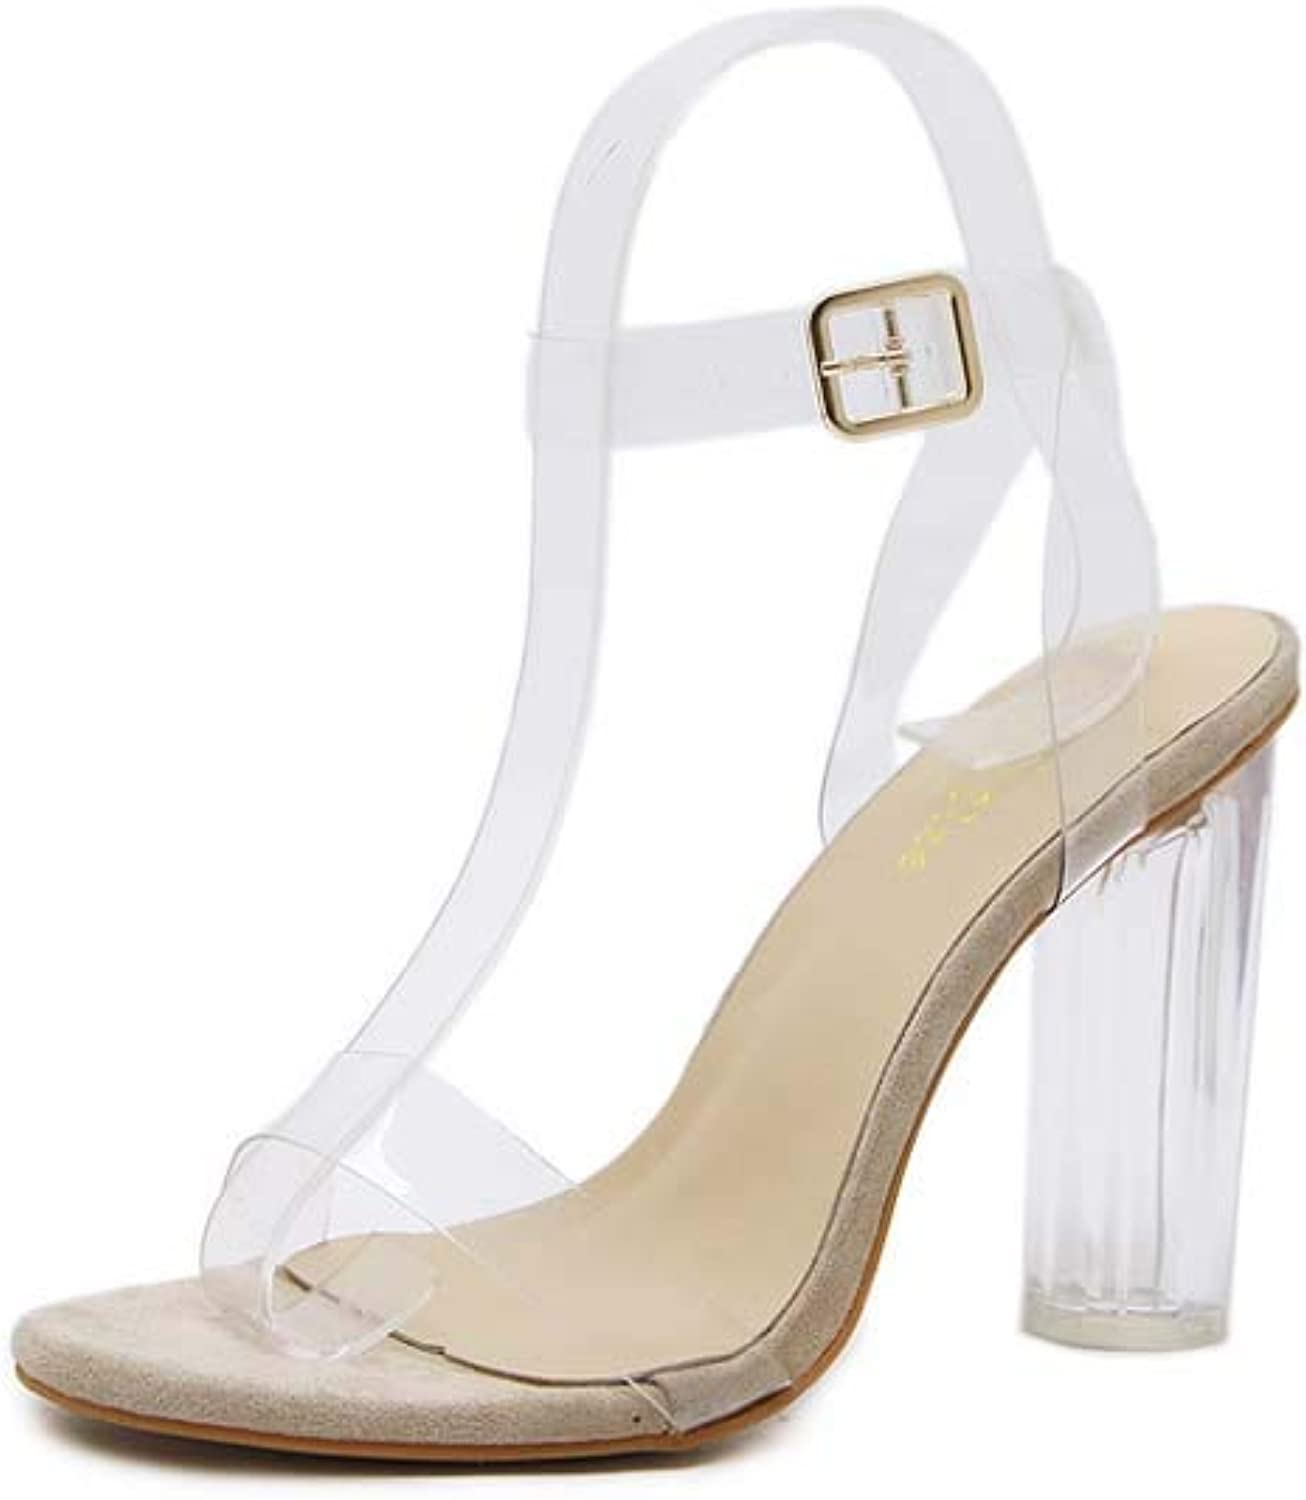 Lucite Clear Heels,Women's Chunky Block Strappy Transparent High Heel Pump Sandals,Fashion Ankle Strap Open Toe shoes